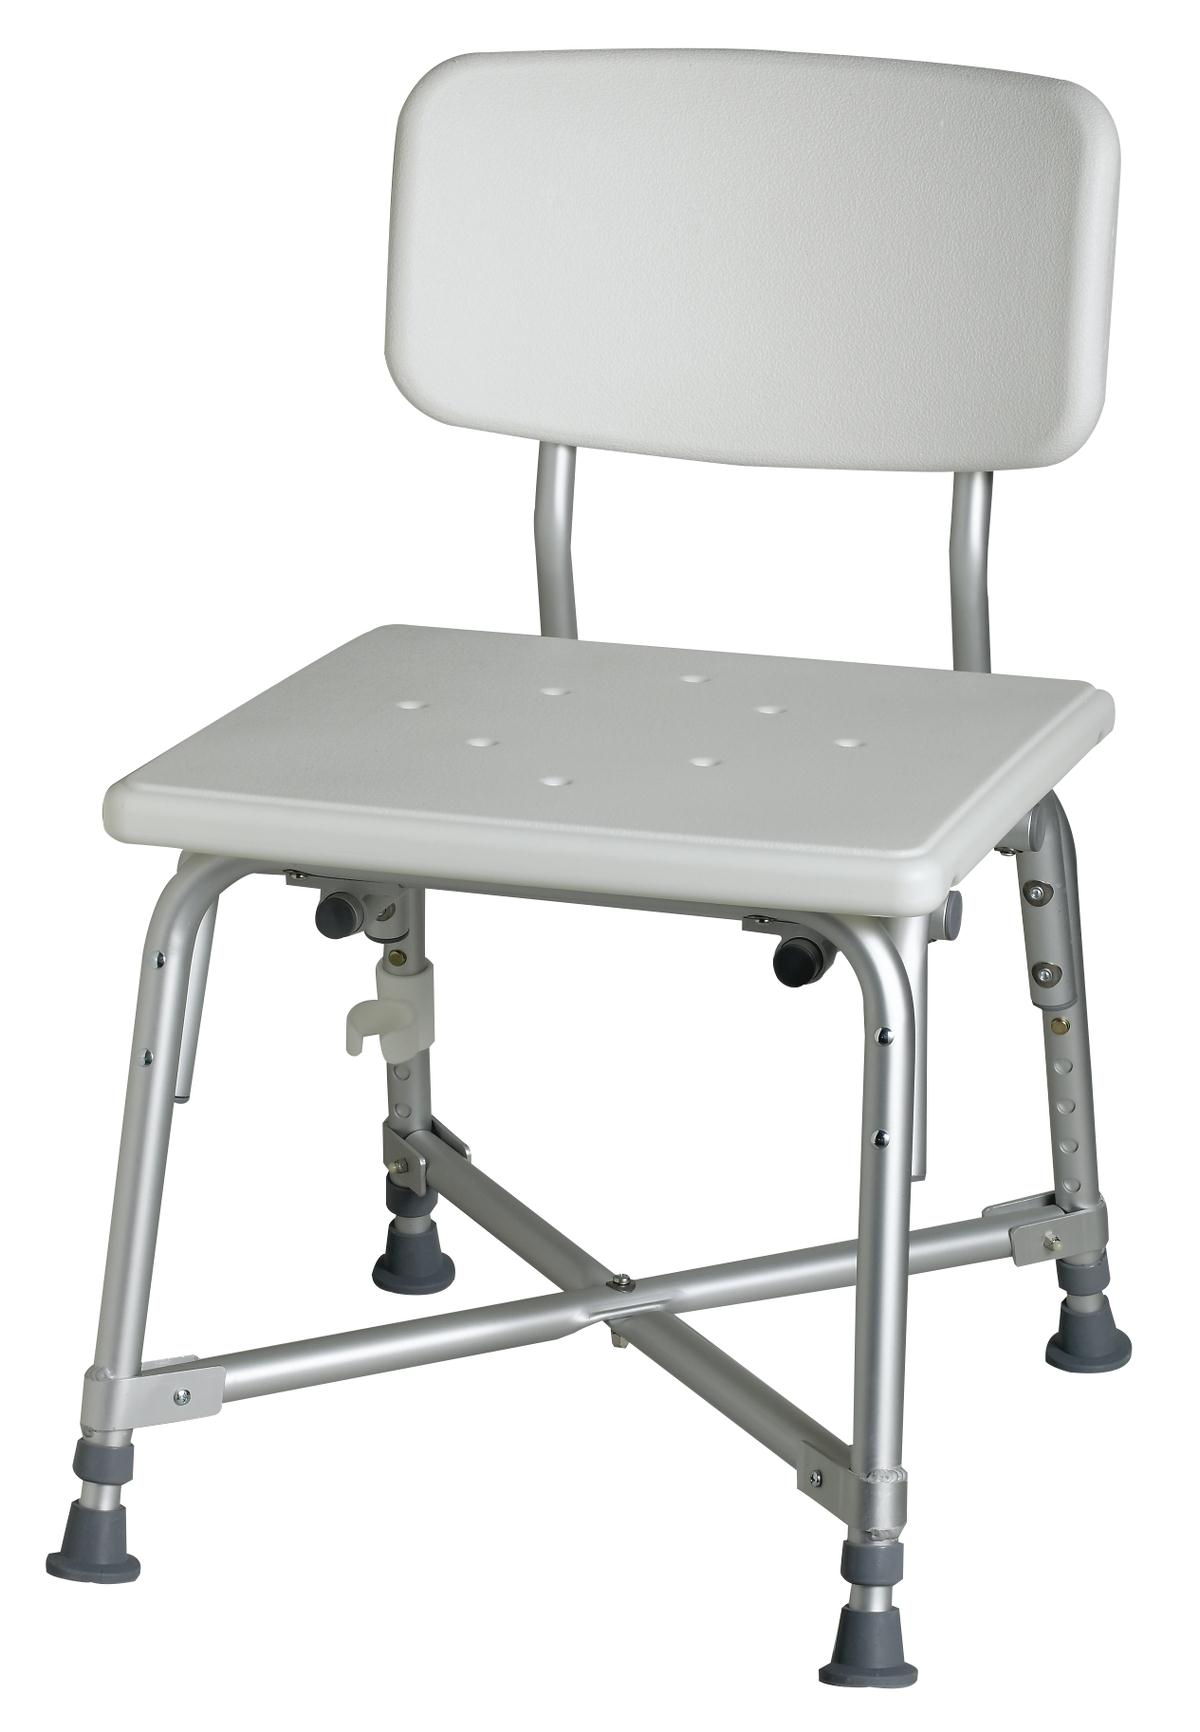 Bariatric Aluminum Bath Bench With Back Careway Wellness